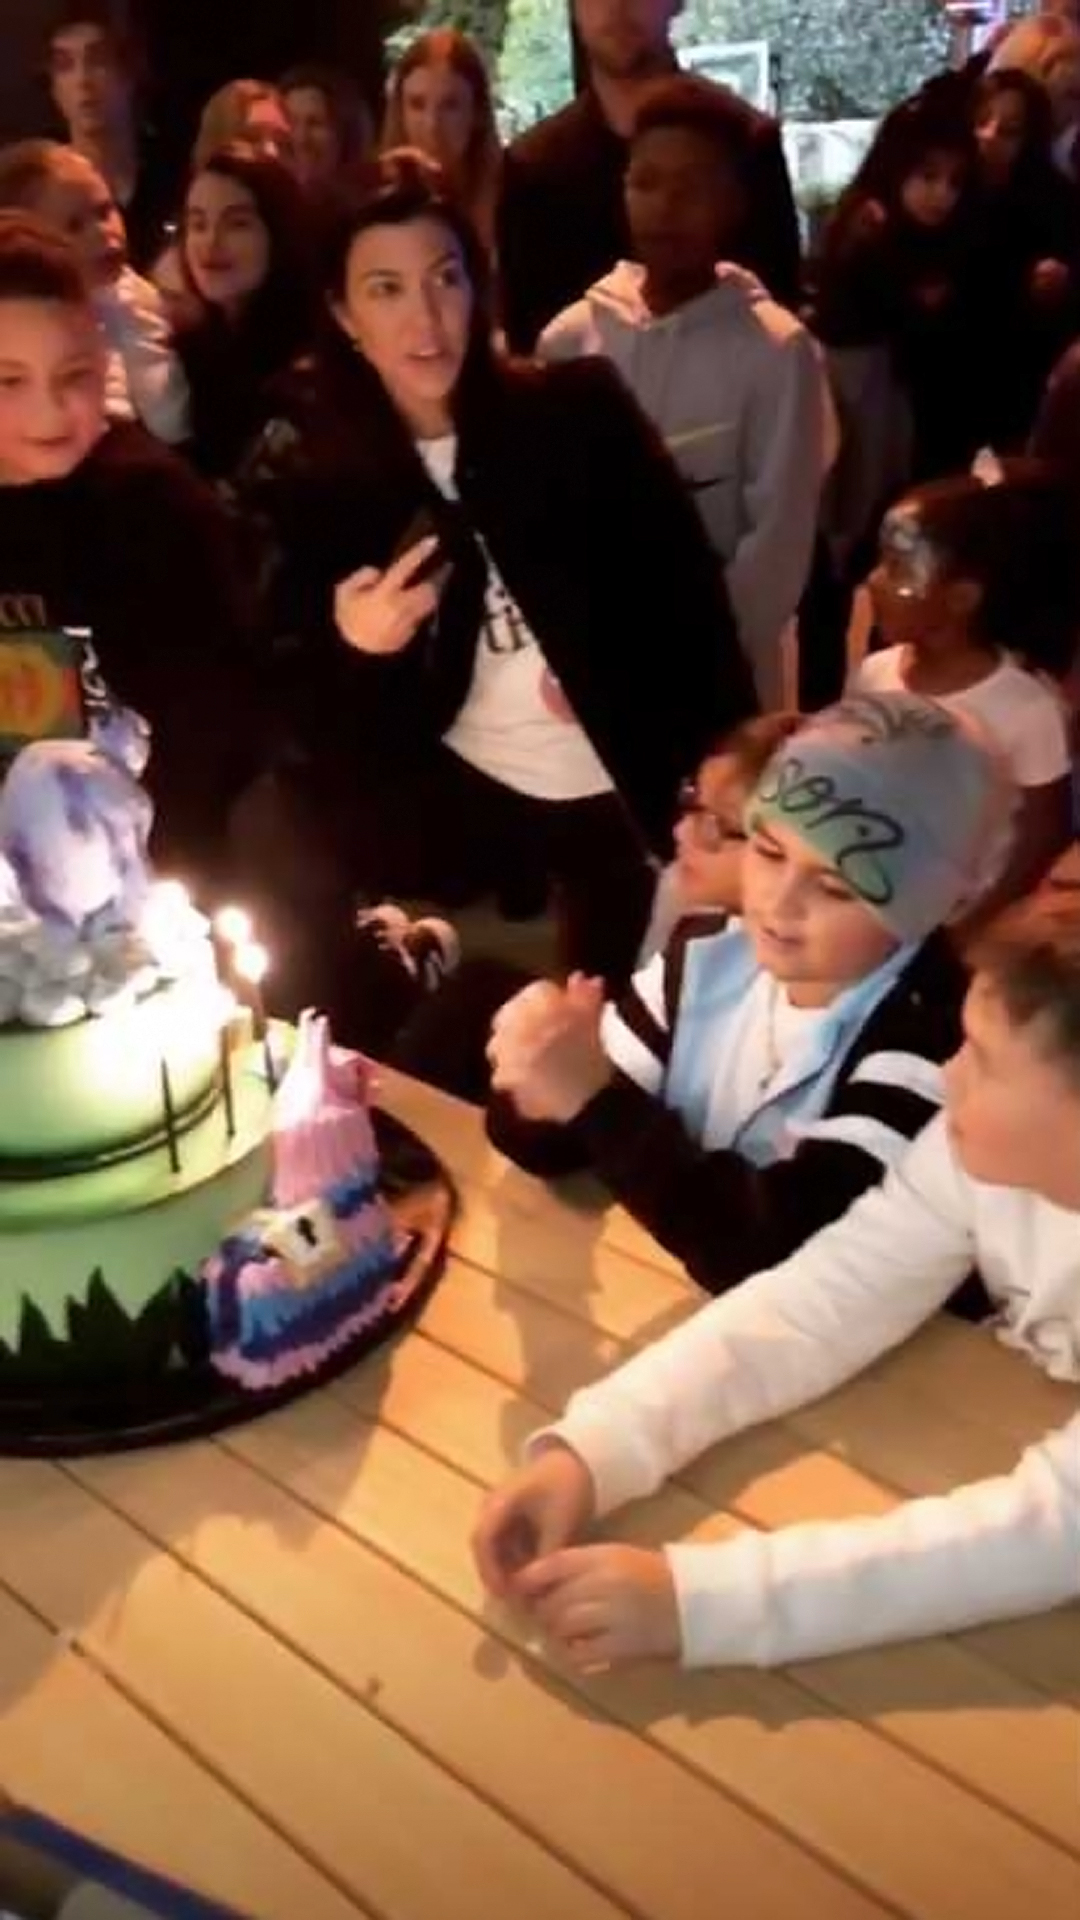 Kourtney Throws Sons a Fortnite-Themed Birthday Party - Kourtney smiled as Mason got ready to blow out the candles on his cake.